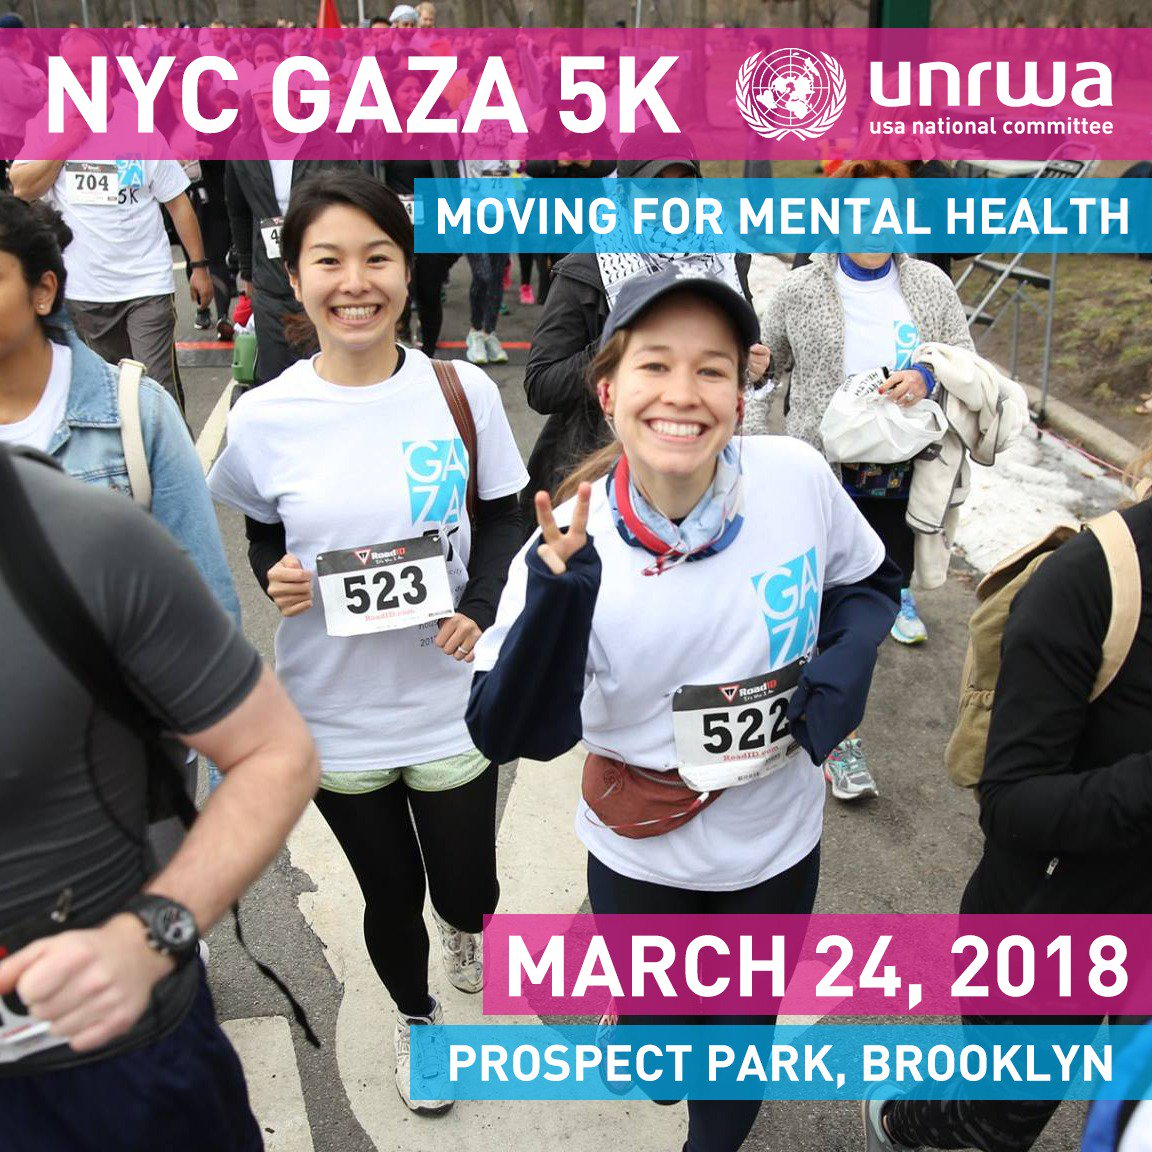 Unrwa Usa On Twitter The First Gaza5k Of 2018 Is On The Calendar